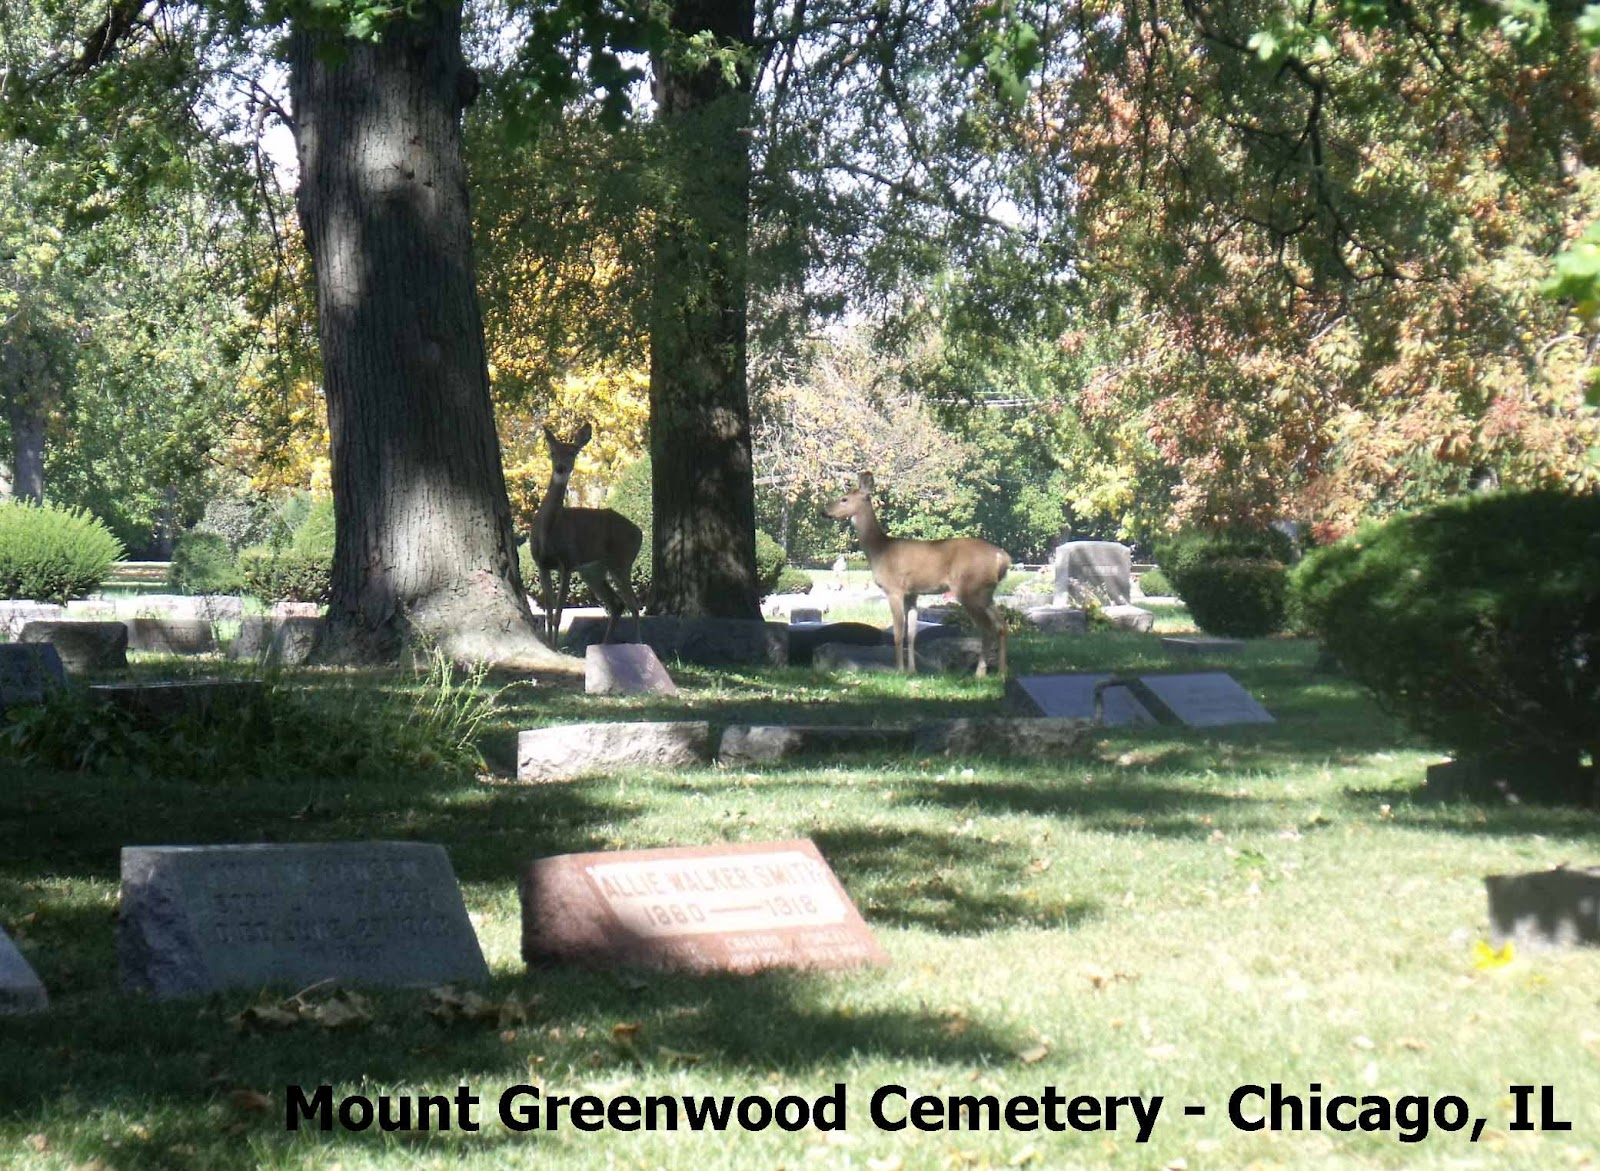 Cemetery today (10/2/2012)